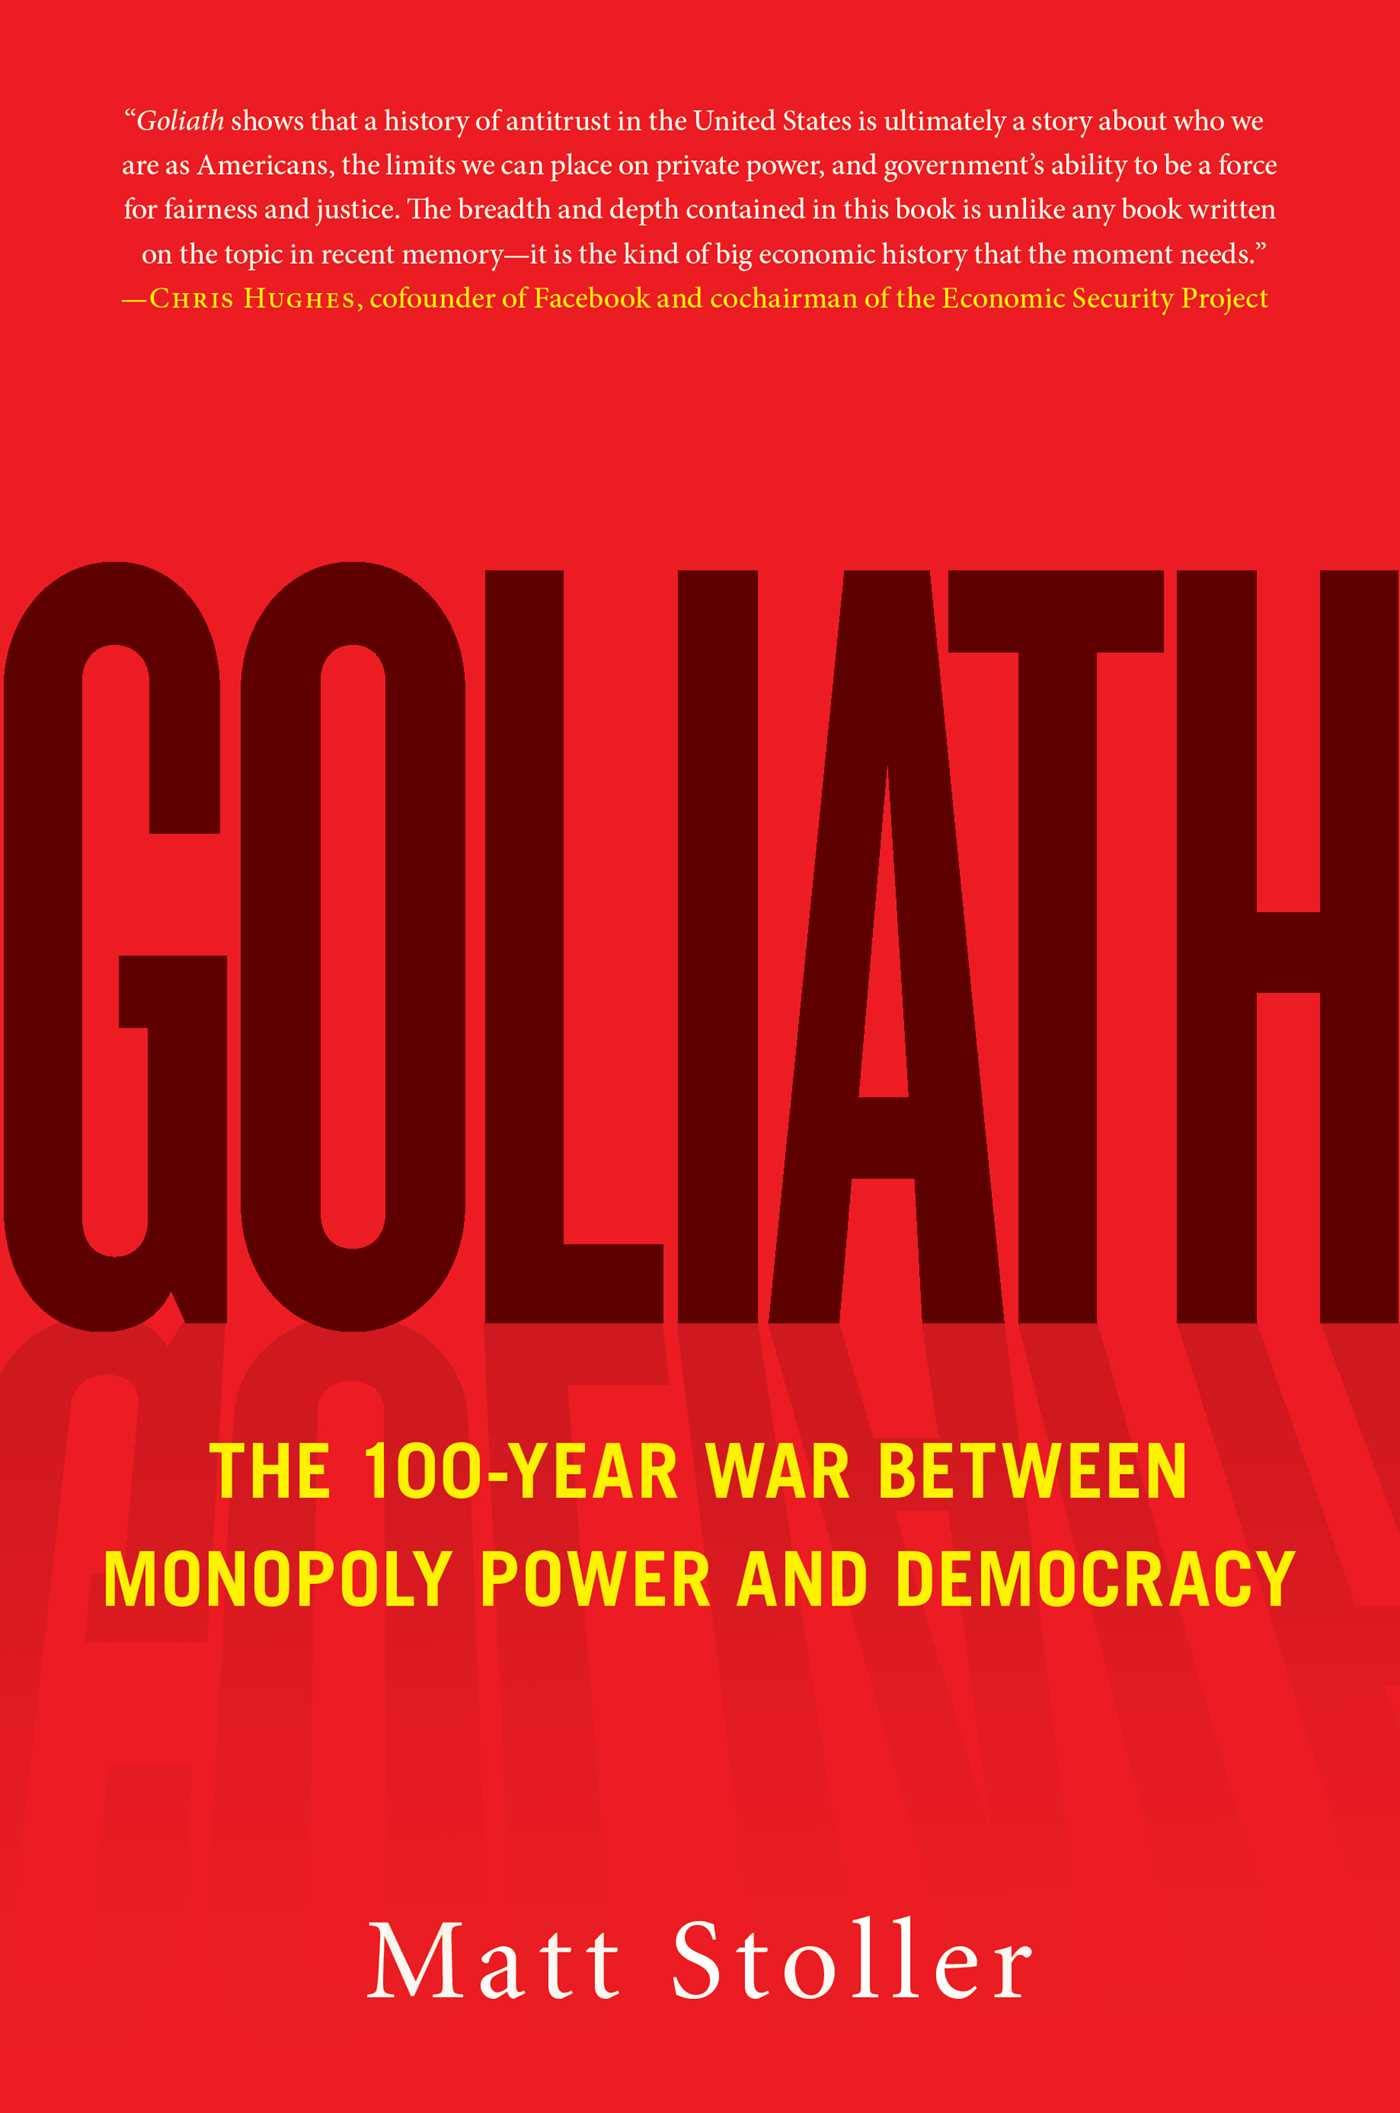 Goliath: The 100-Year War Between Monopoly Power and Democracy by Simon & Schuster